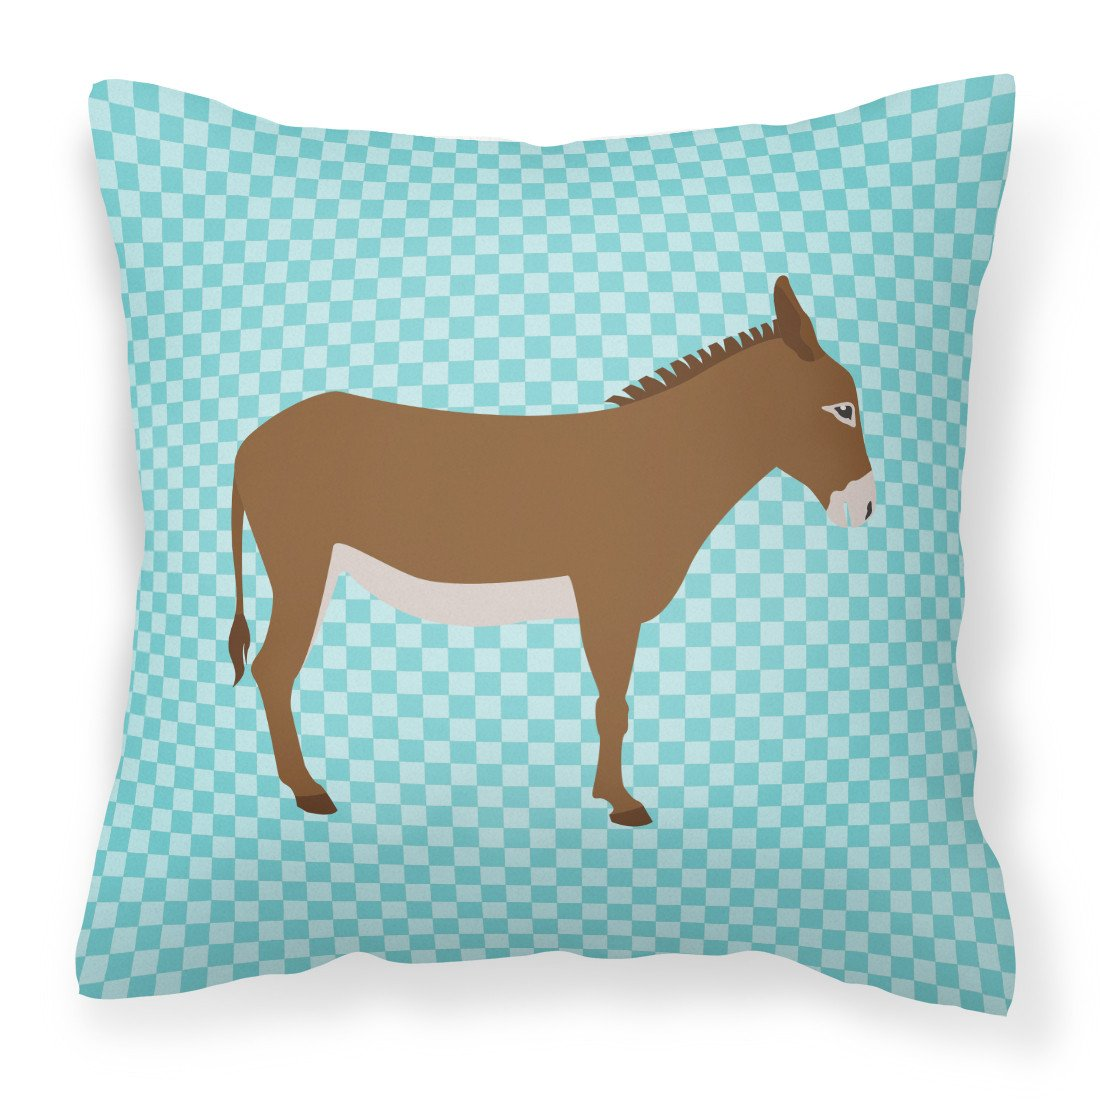 Cotentin Donkey Blue Check Fabric Decorative Pillow BB8023PW1818 by Caroline's Treasures